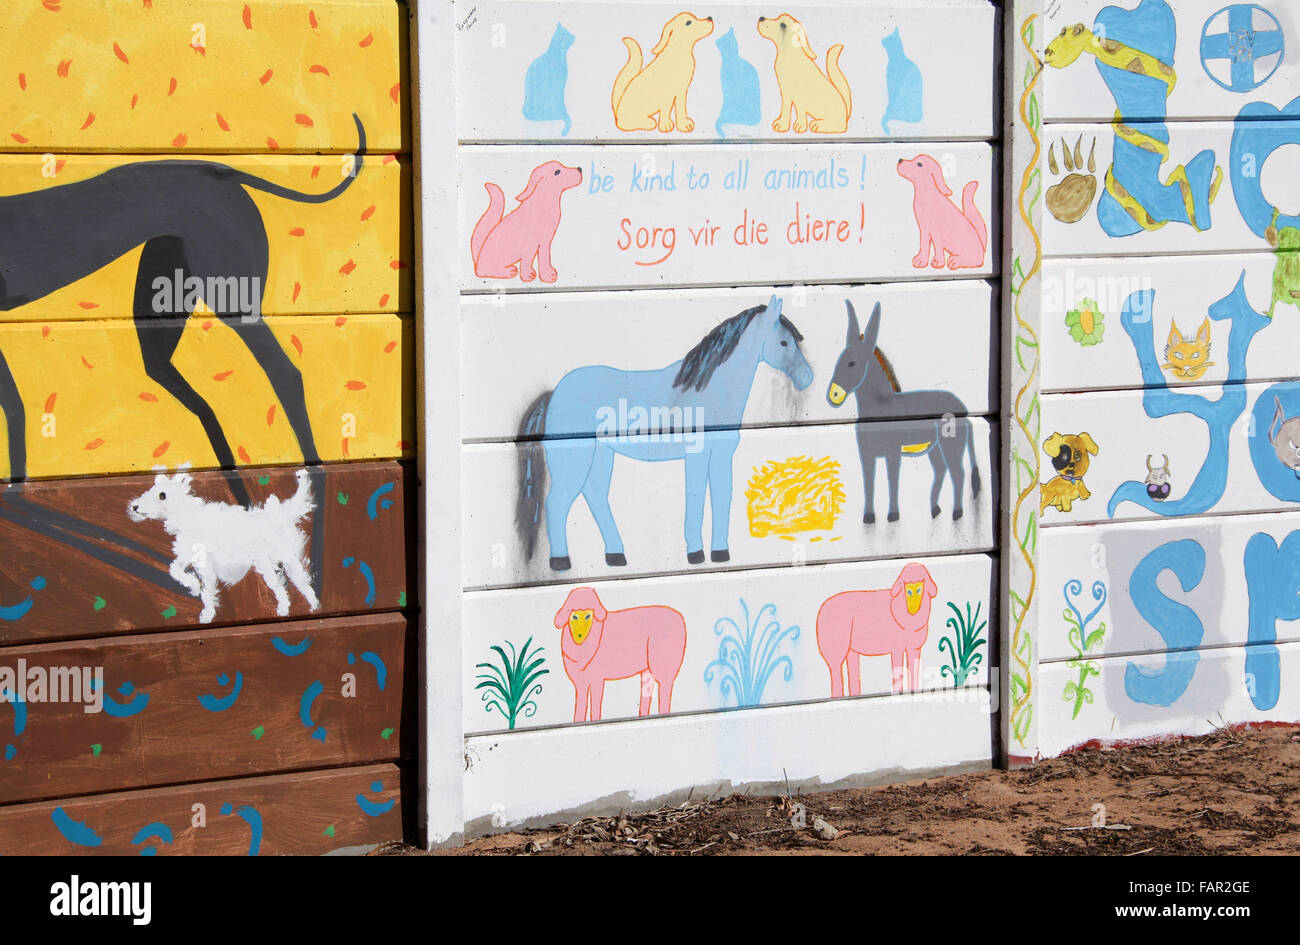 Animal welfare mural in South Africa - Stock Image